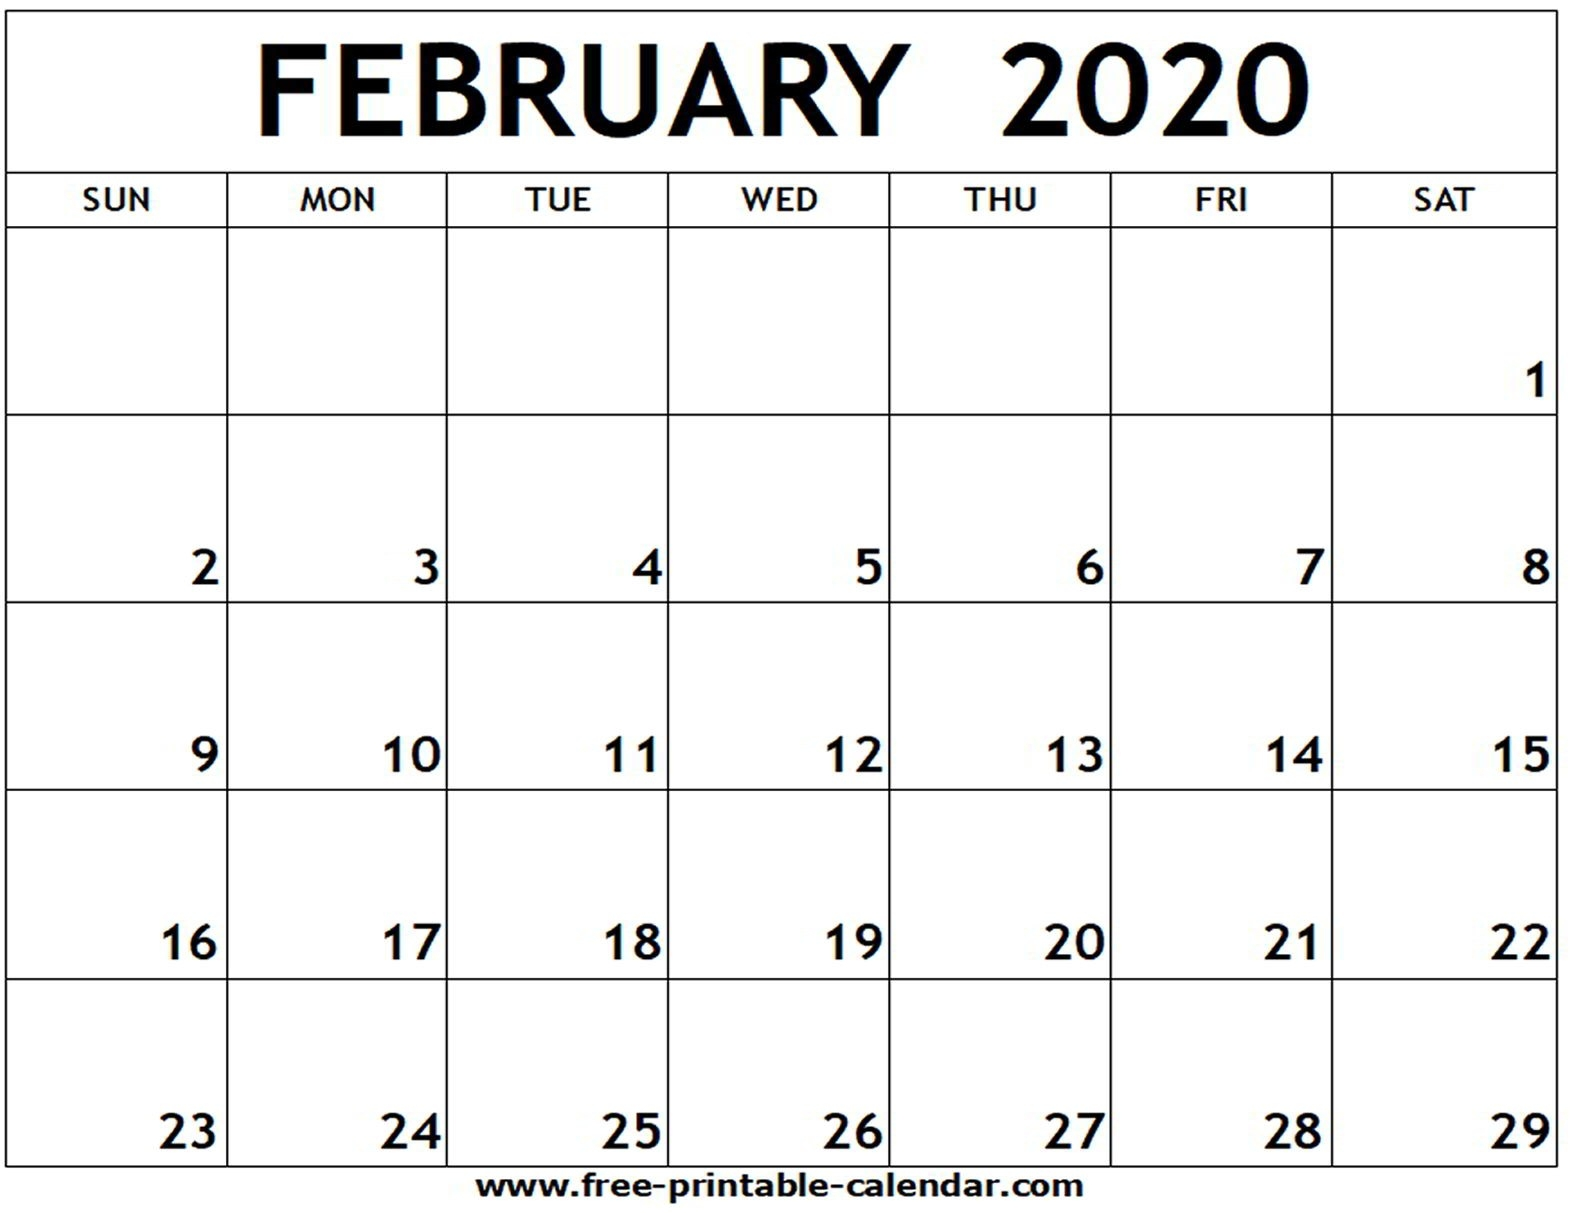 February 2020 Printable Calendar - Free-Printable-Calendar  Fill In Calendar 2020 Printable